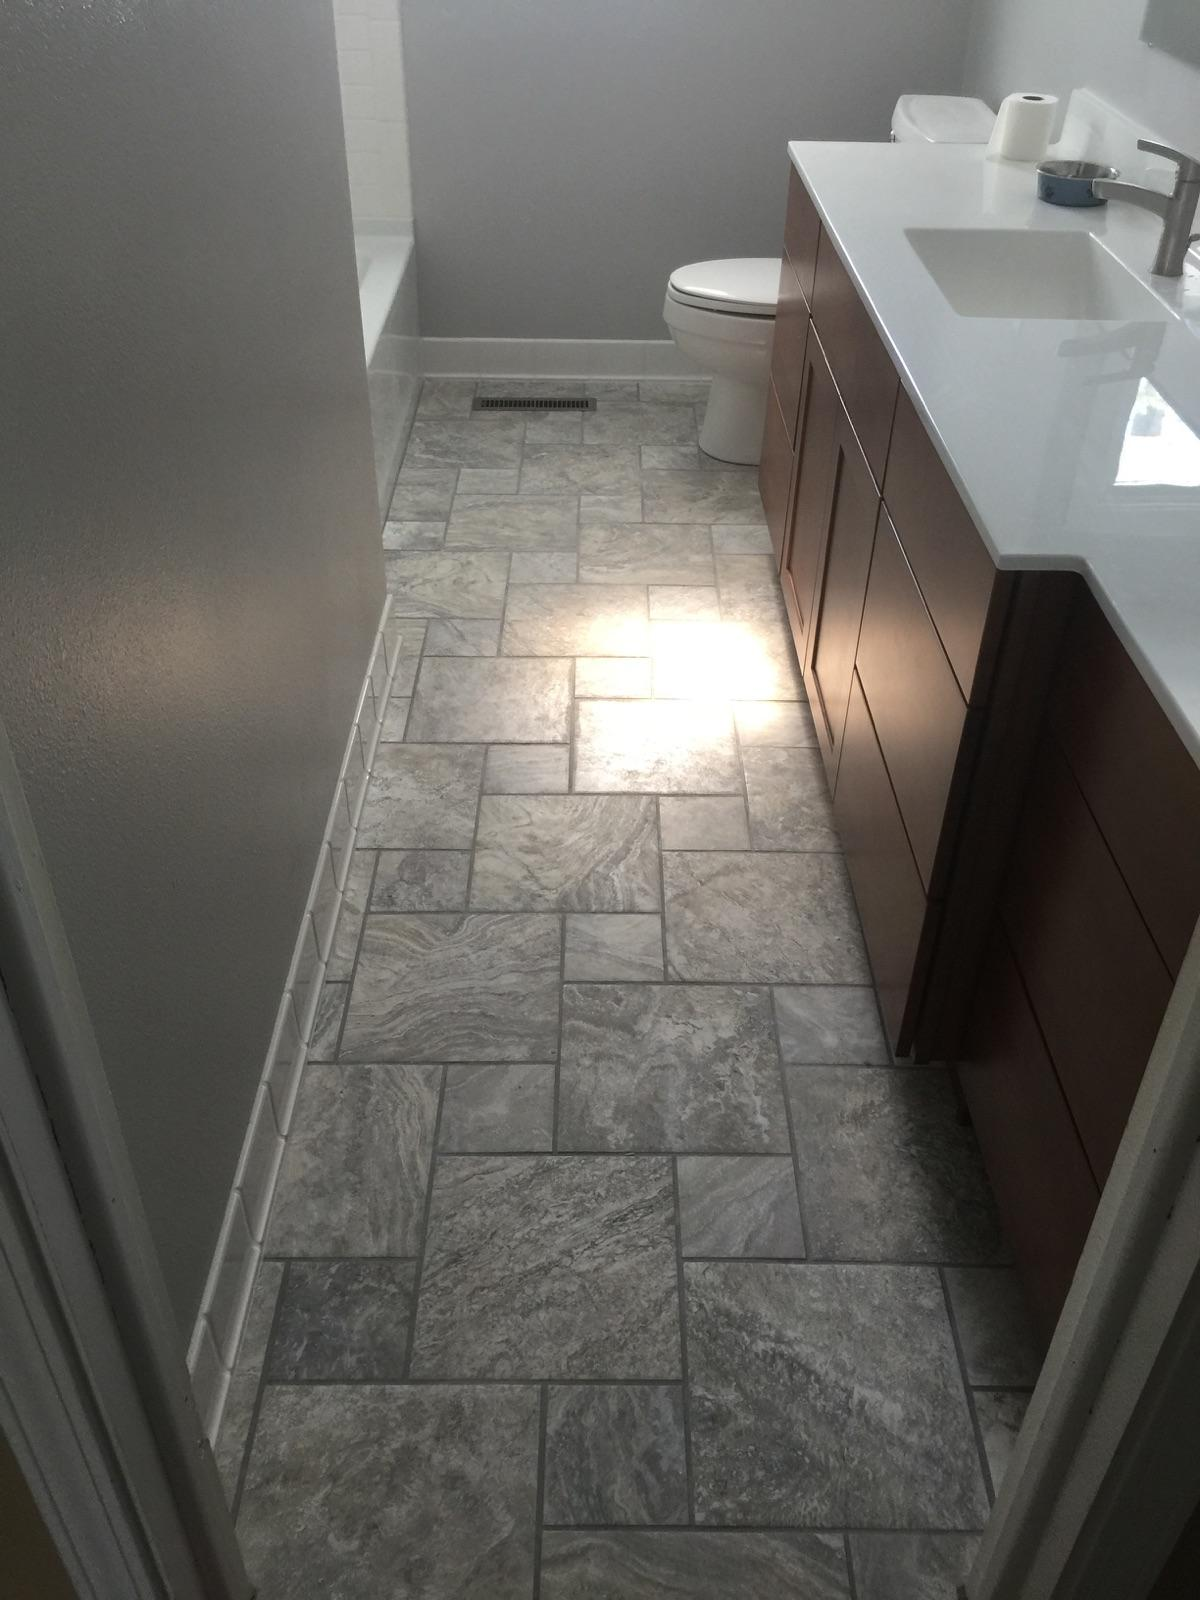 Bathroom Remodeling Eau Claire Wi kitchen remodeling | bathroom remodeling | eau claire, wi